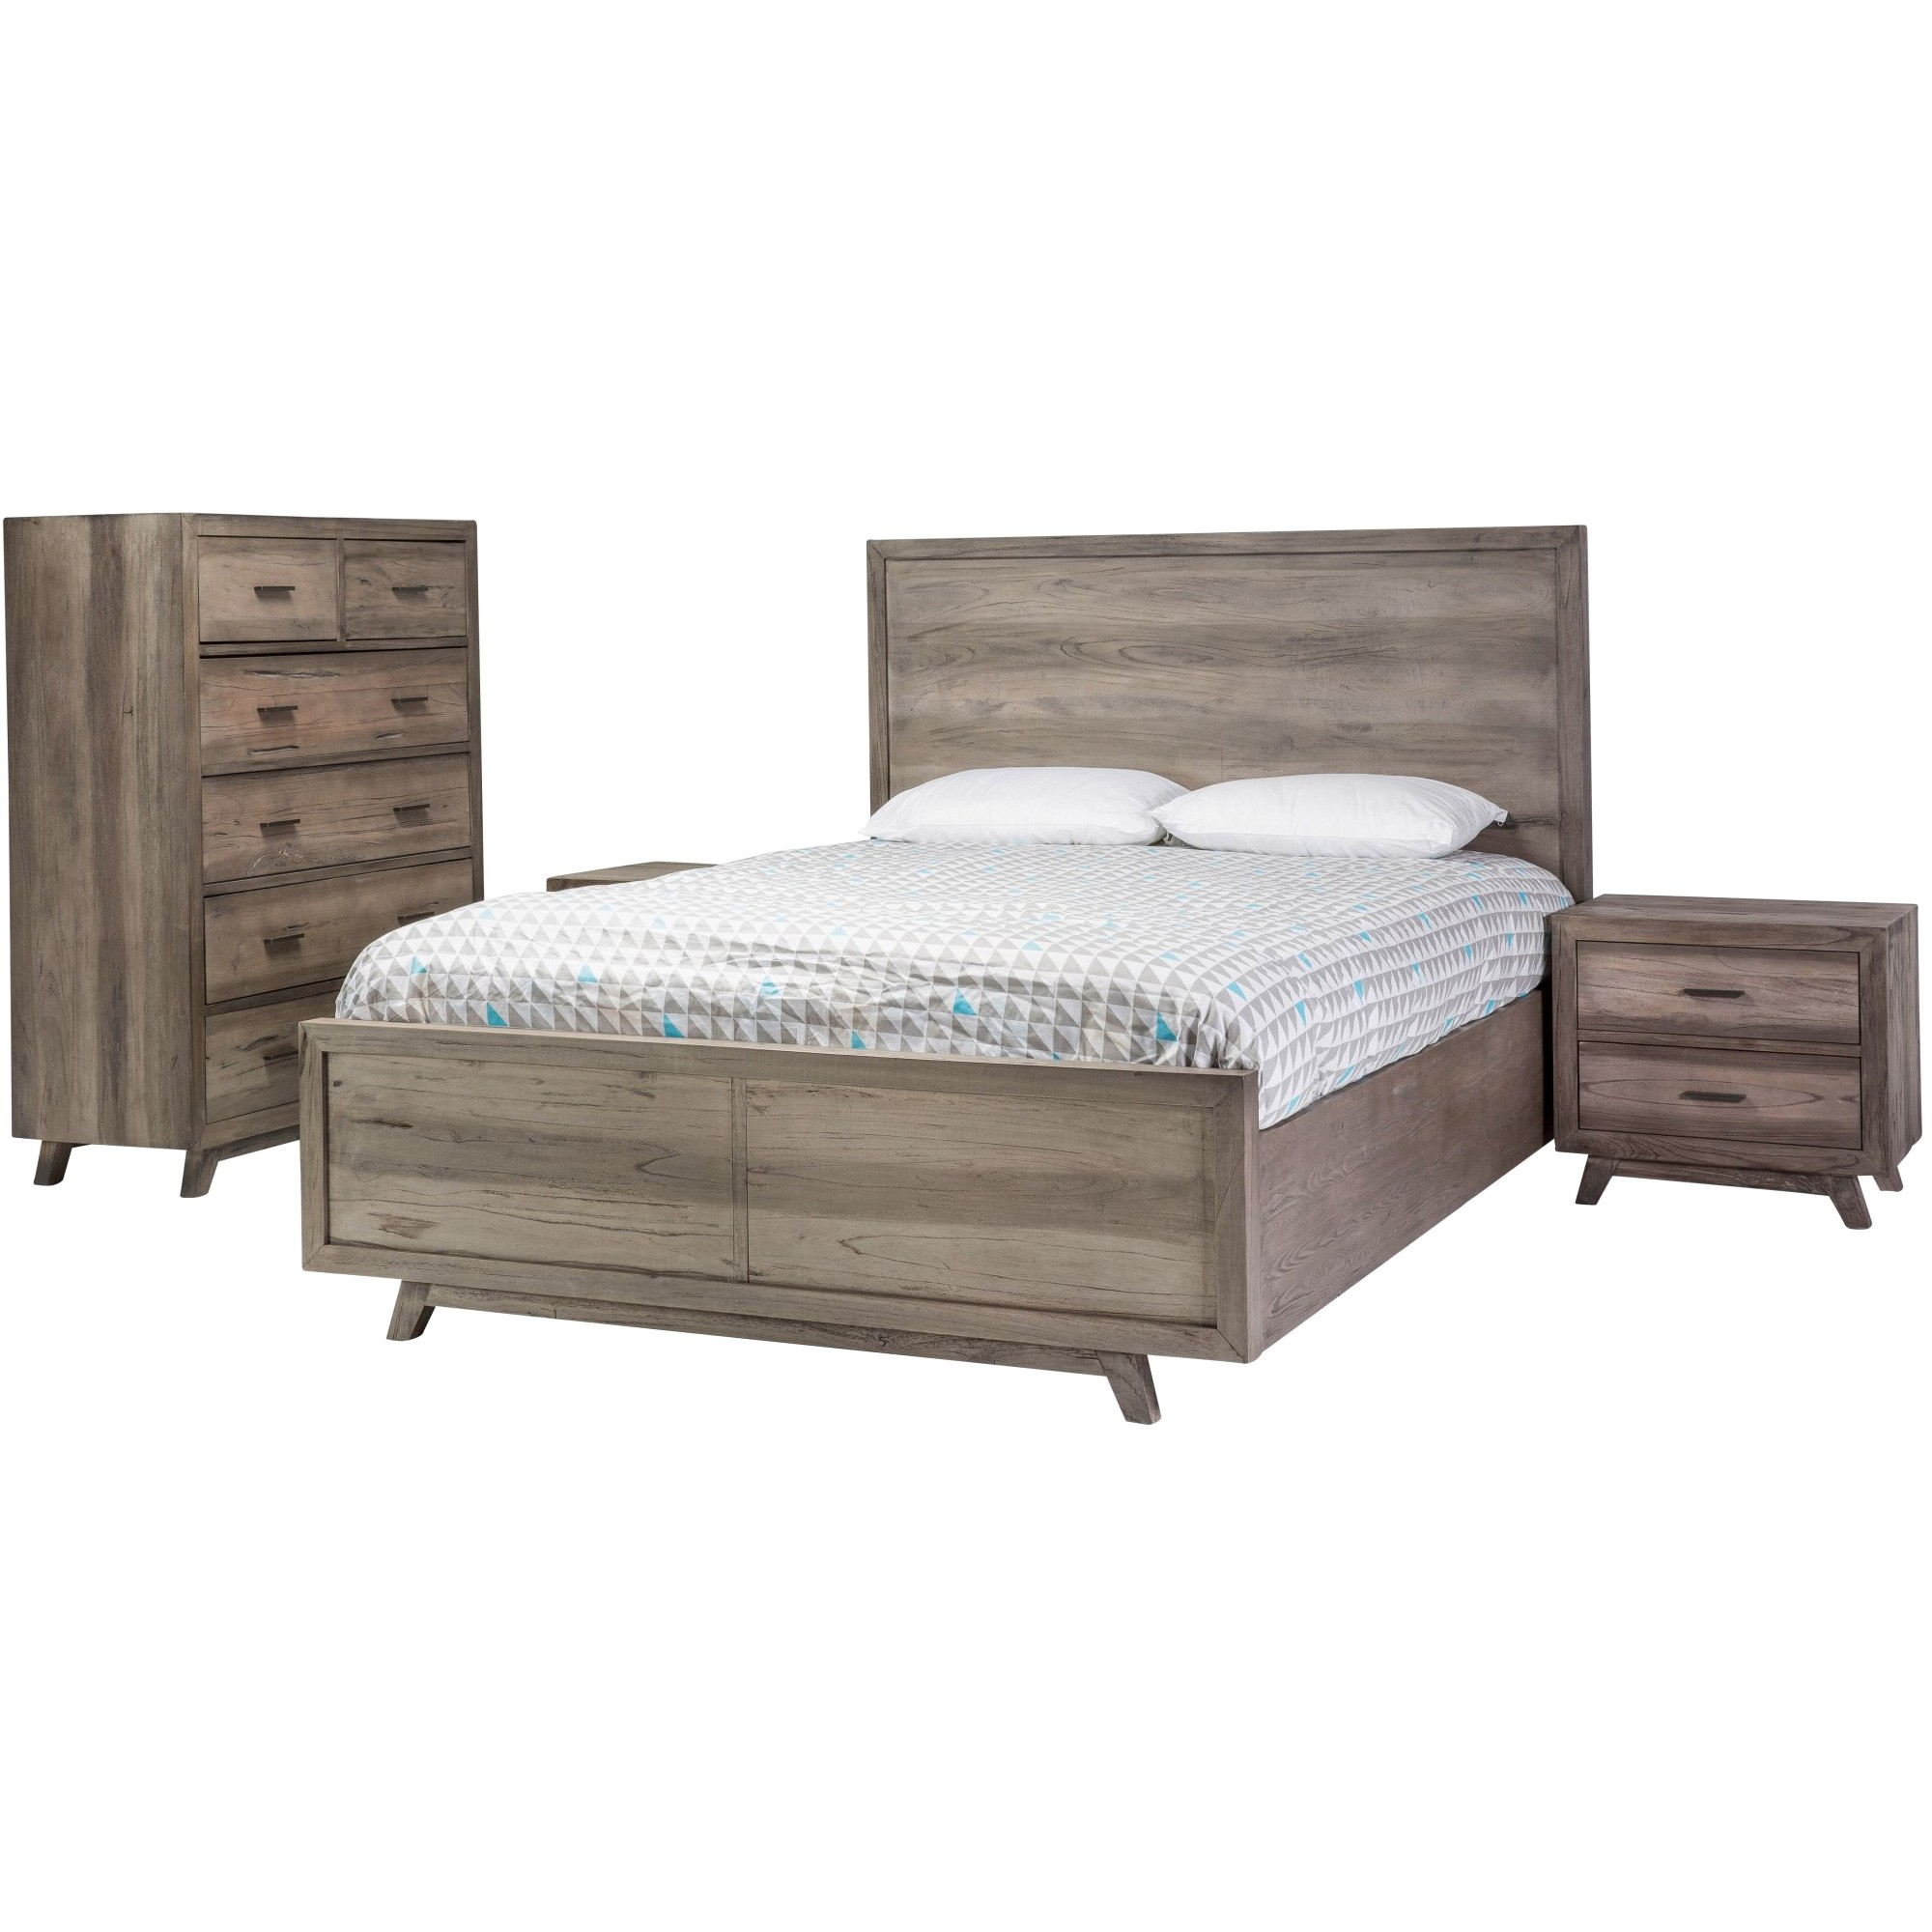 Abriana 4 Piece Hardwood Timber Bedroom Tallboy Suite, Queen